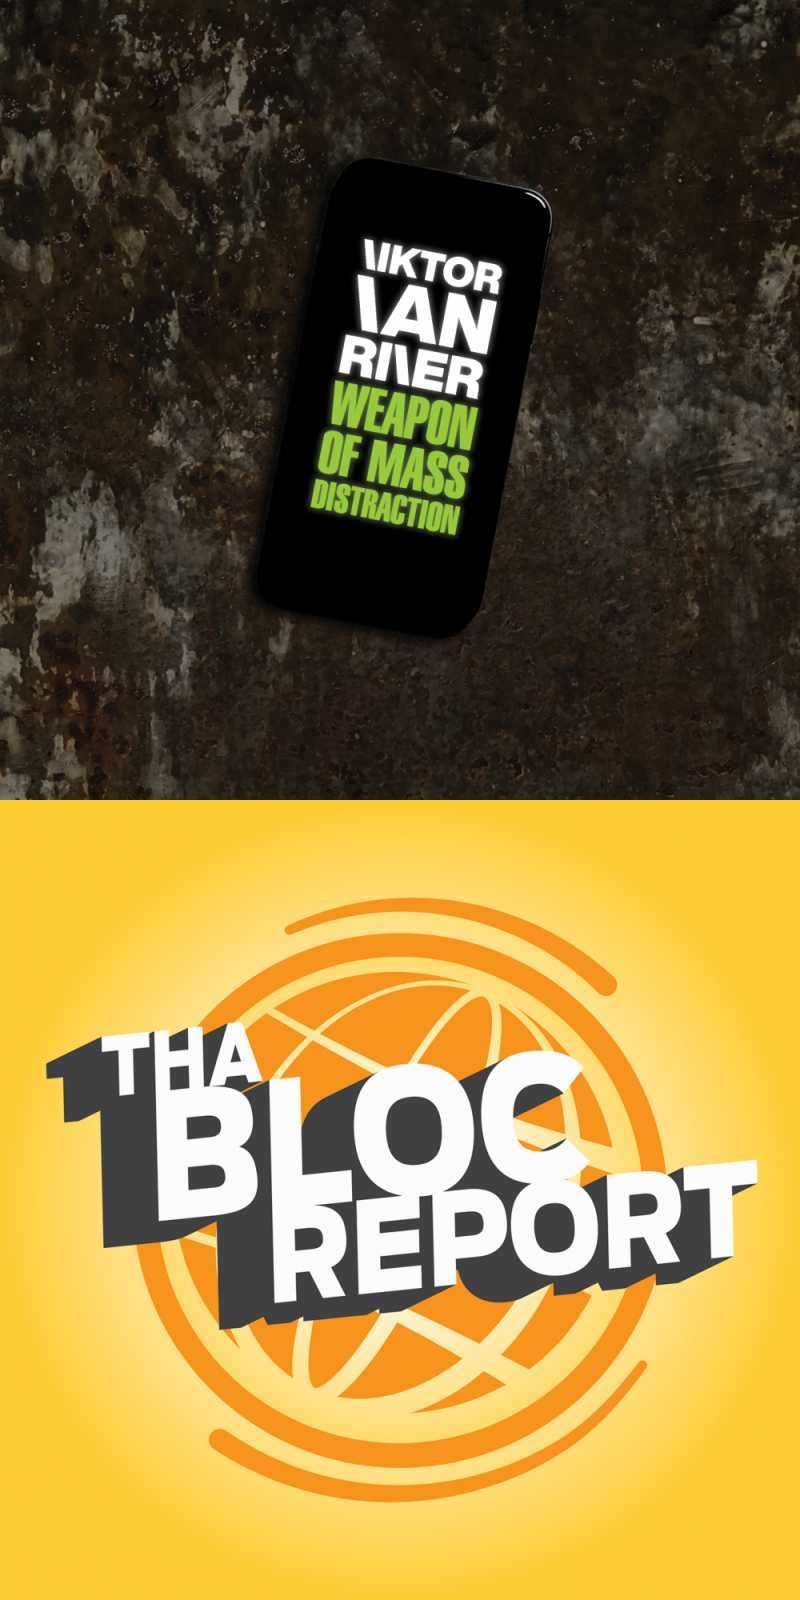 """Cover art of Viktor Van River's """"Weapon Of Mass Distraction"""" and Tha Bloc Report"""